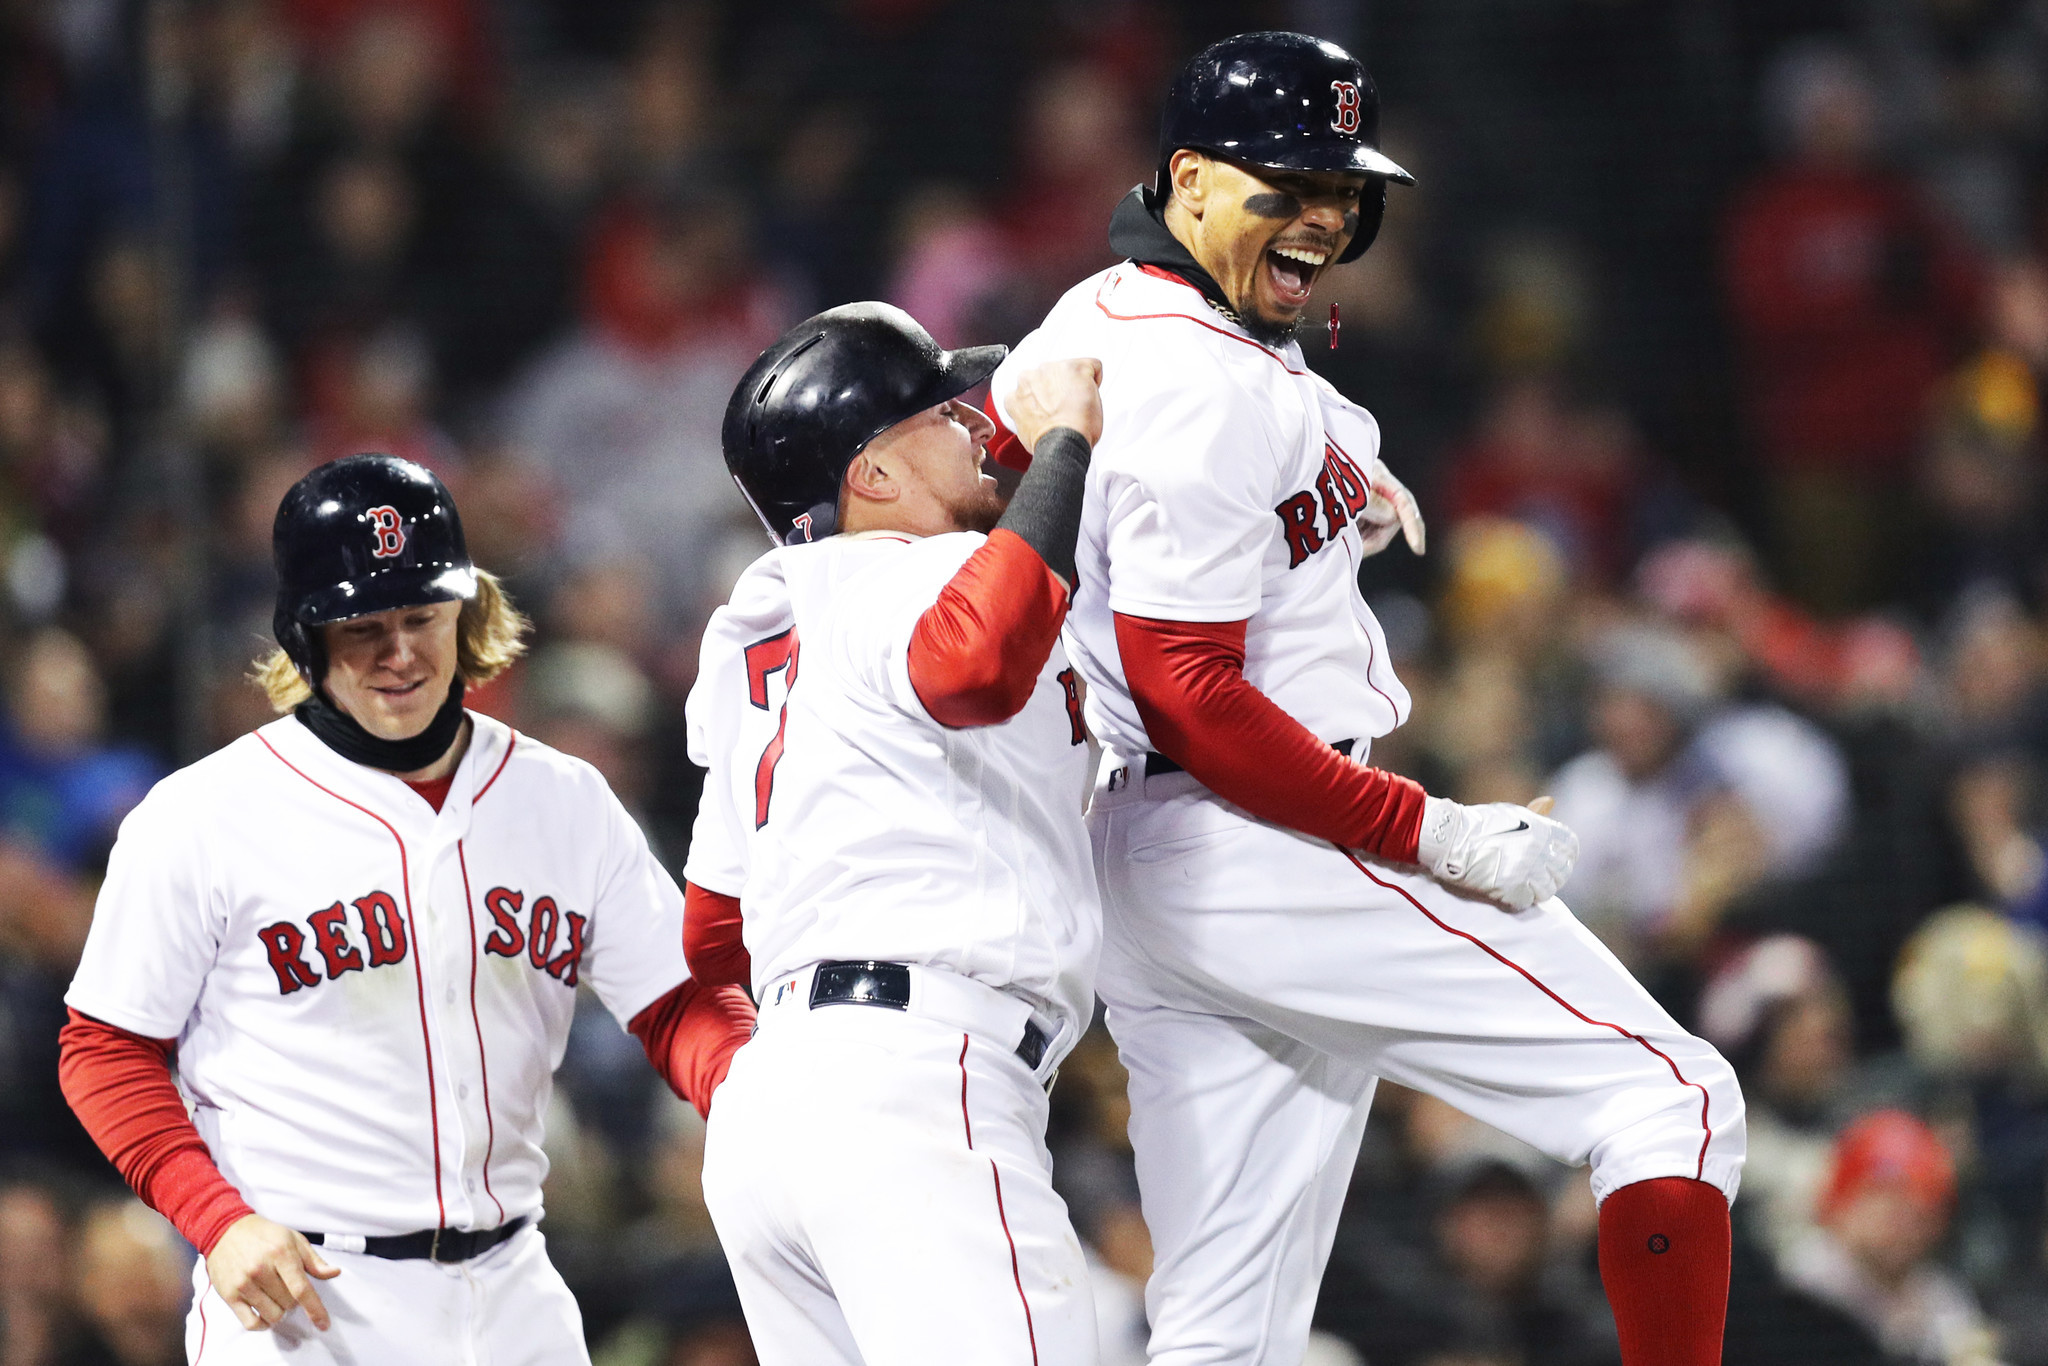 Hc-web-red-sox-yankees-0411-20180410